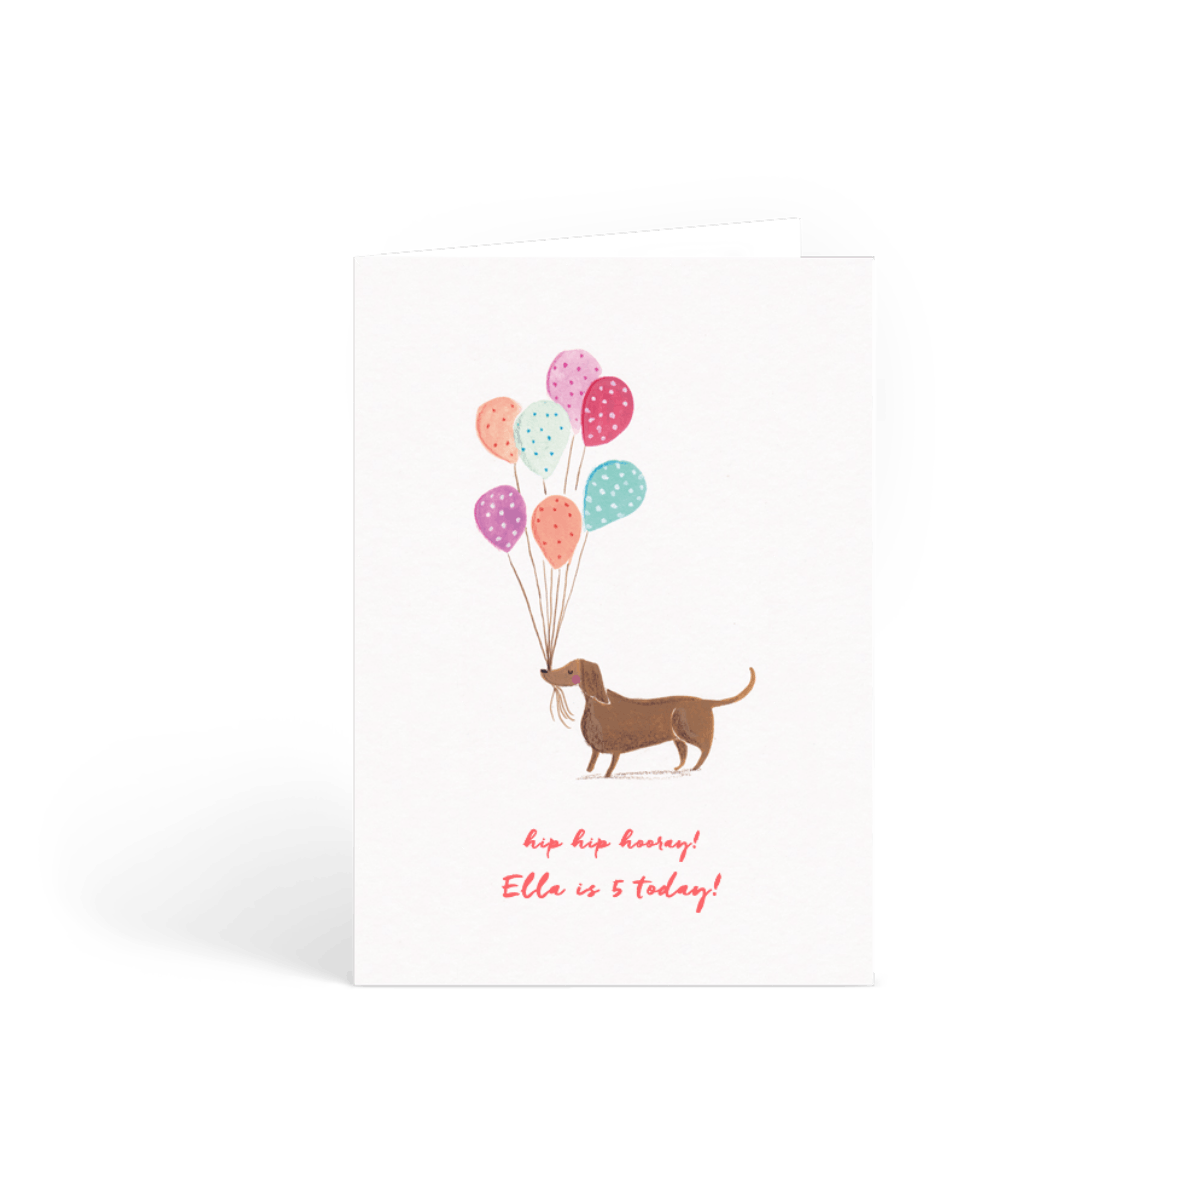 Https%3a%2f%2fwww.papier.com%2fproduct image%2f3201%2f2%2fdachshund with balloons 868 front 1453910702.png?ixlib=rb 1.1